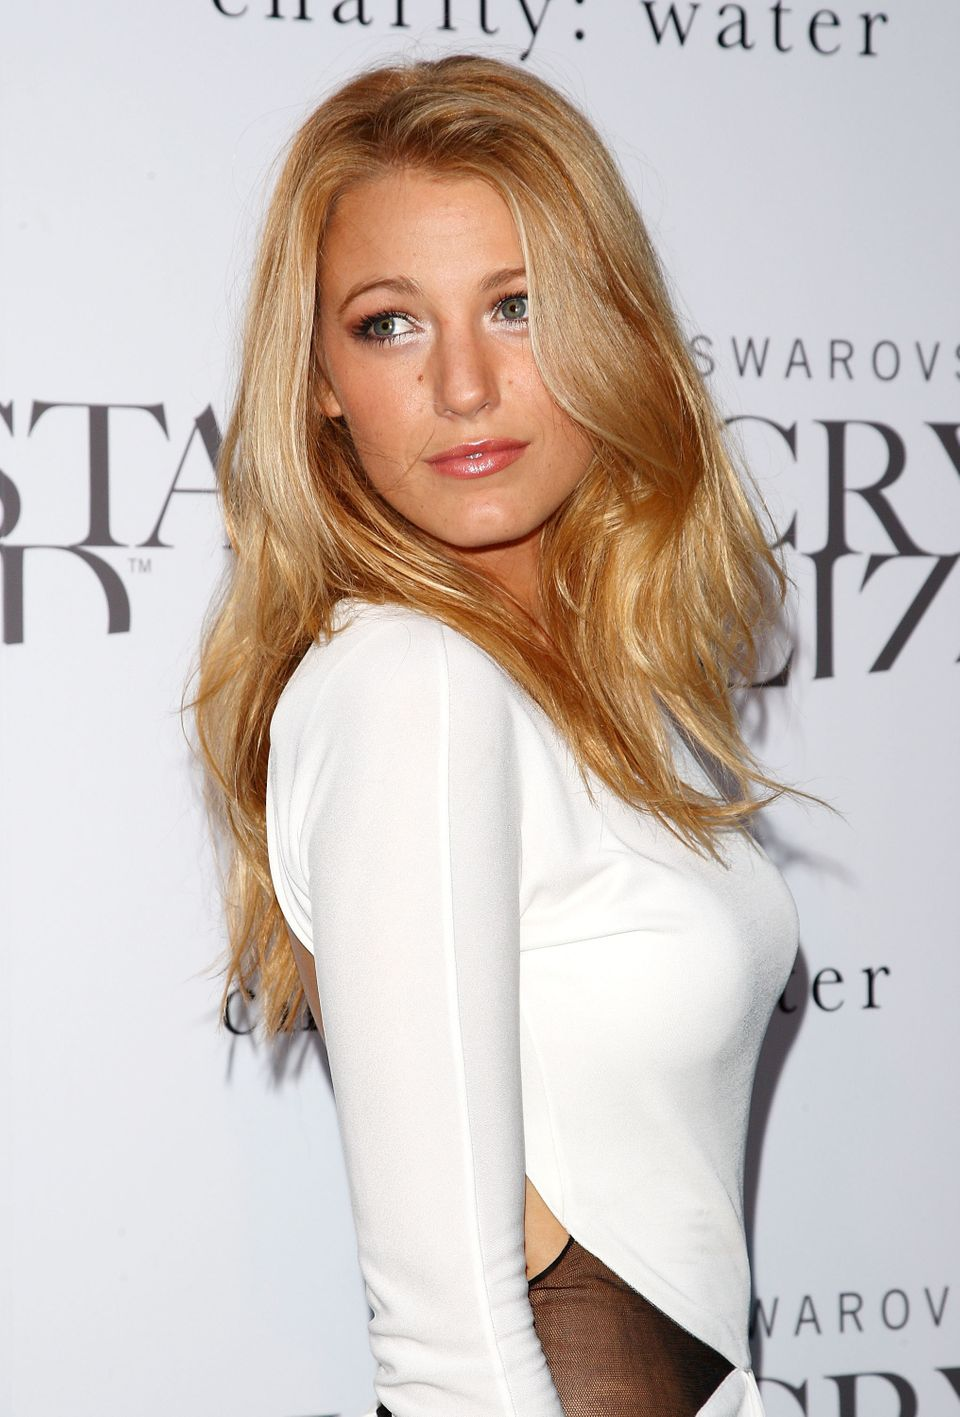 Blake Lively nudes (23 photos), video Boobs, Twitter, legs 2020